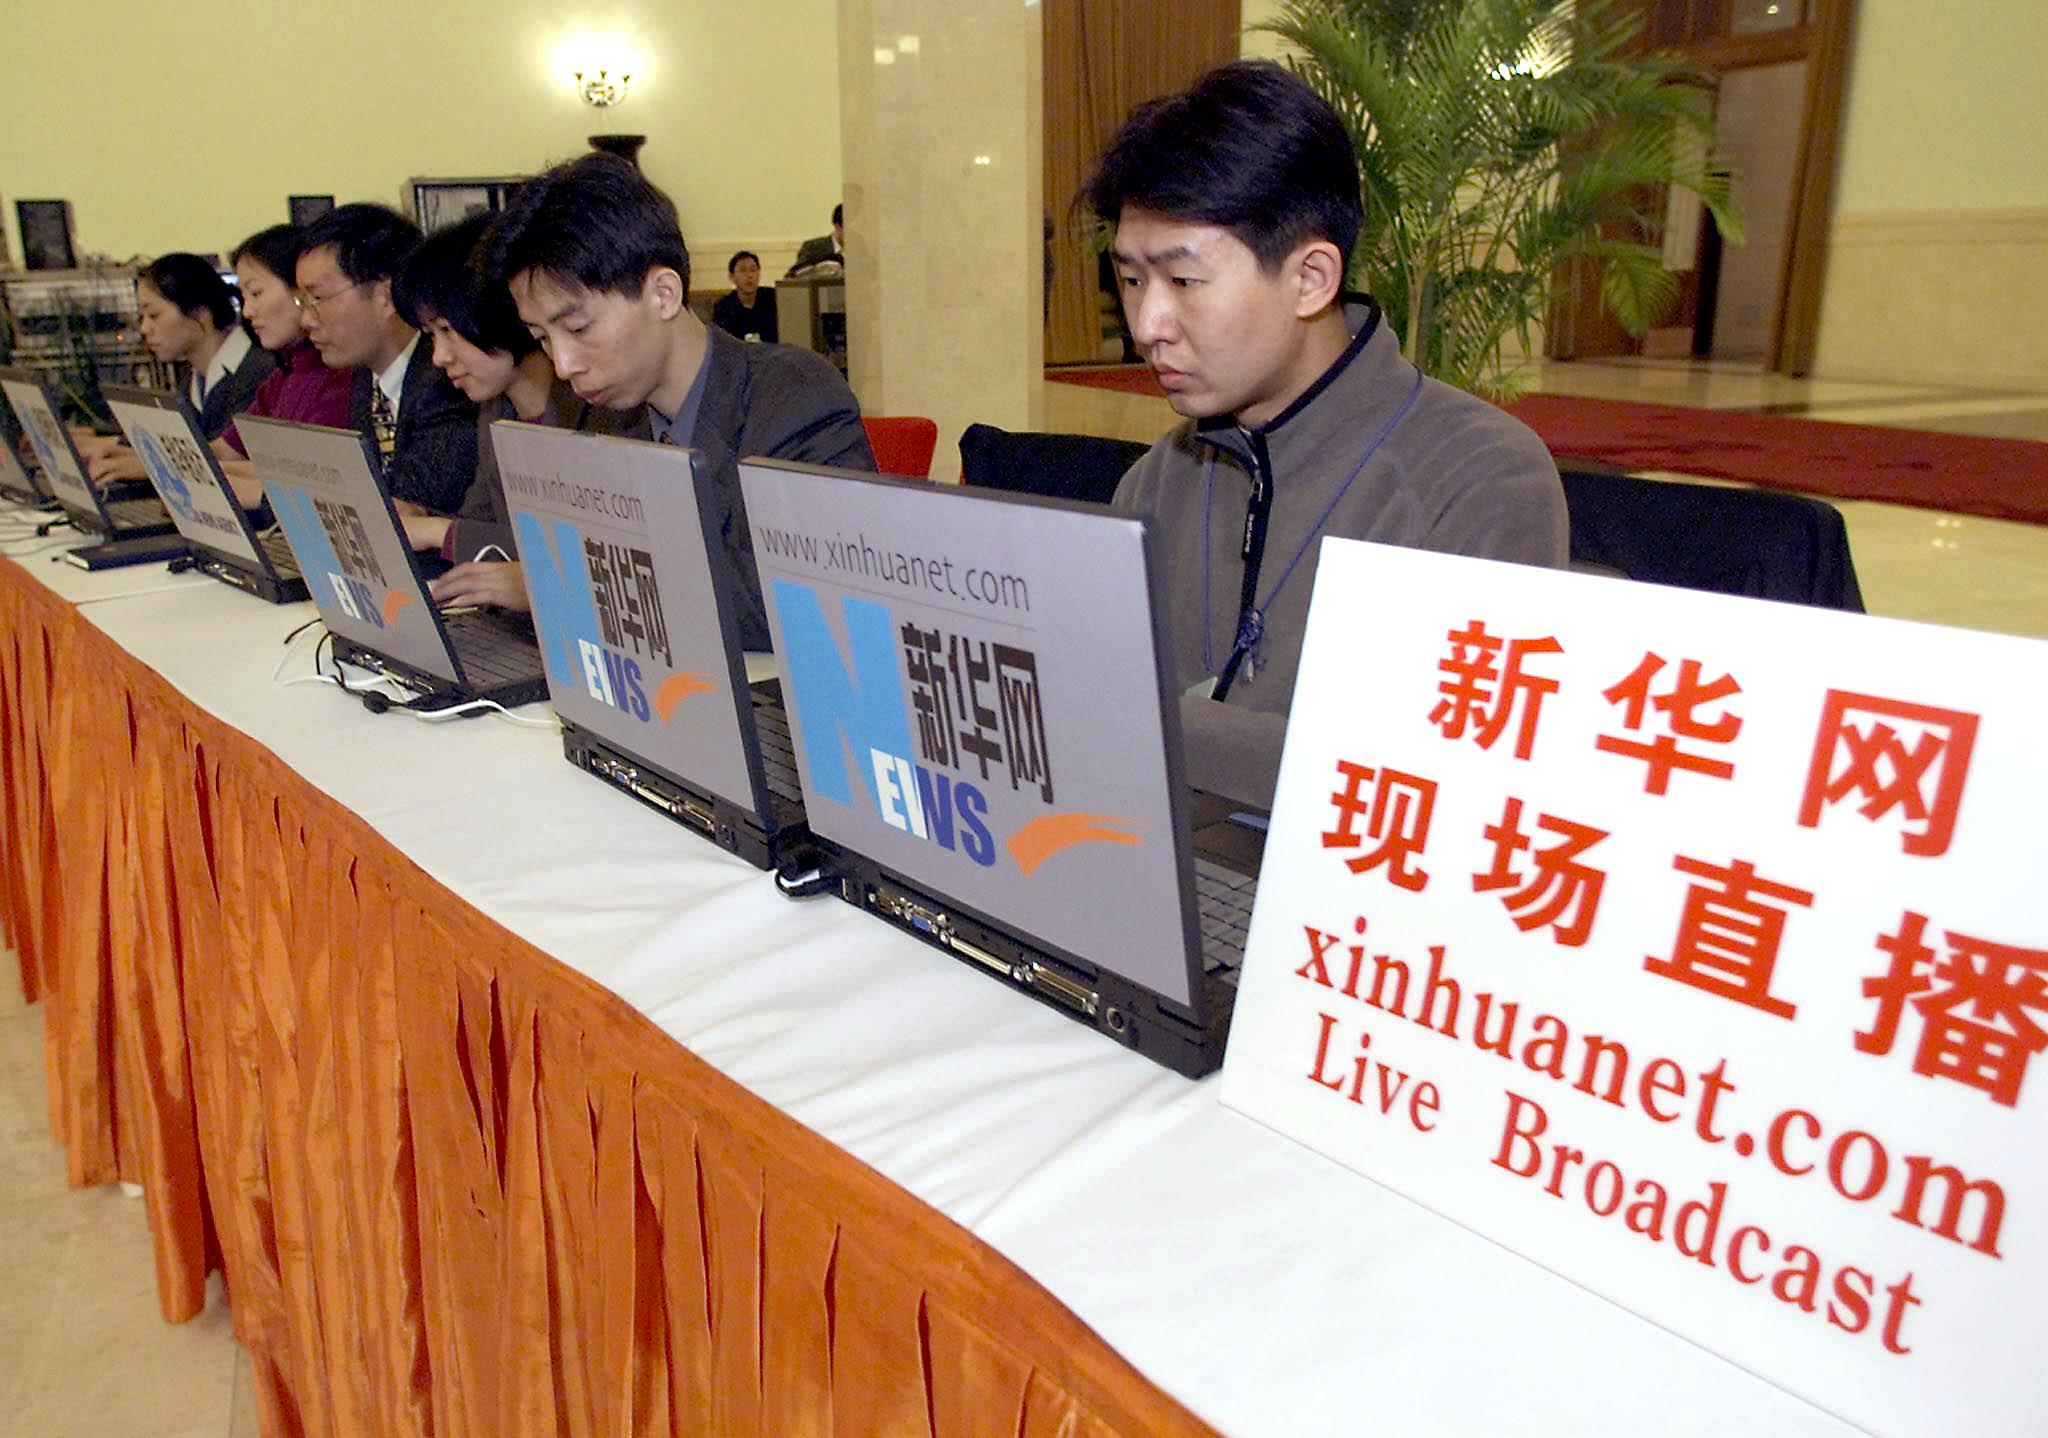 Journalists from China's official news agency Xinhua report directly from the National People's Congress at the Great Hall of the People in Beijing 06 March 2001, to their website. (GOH CHAI HIN/AFP via Getty Images)